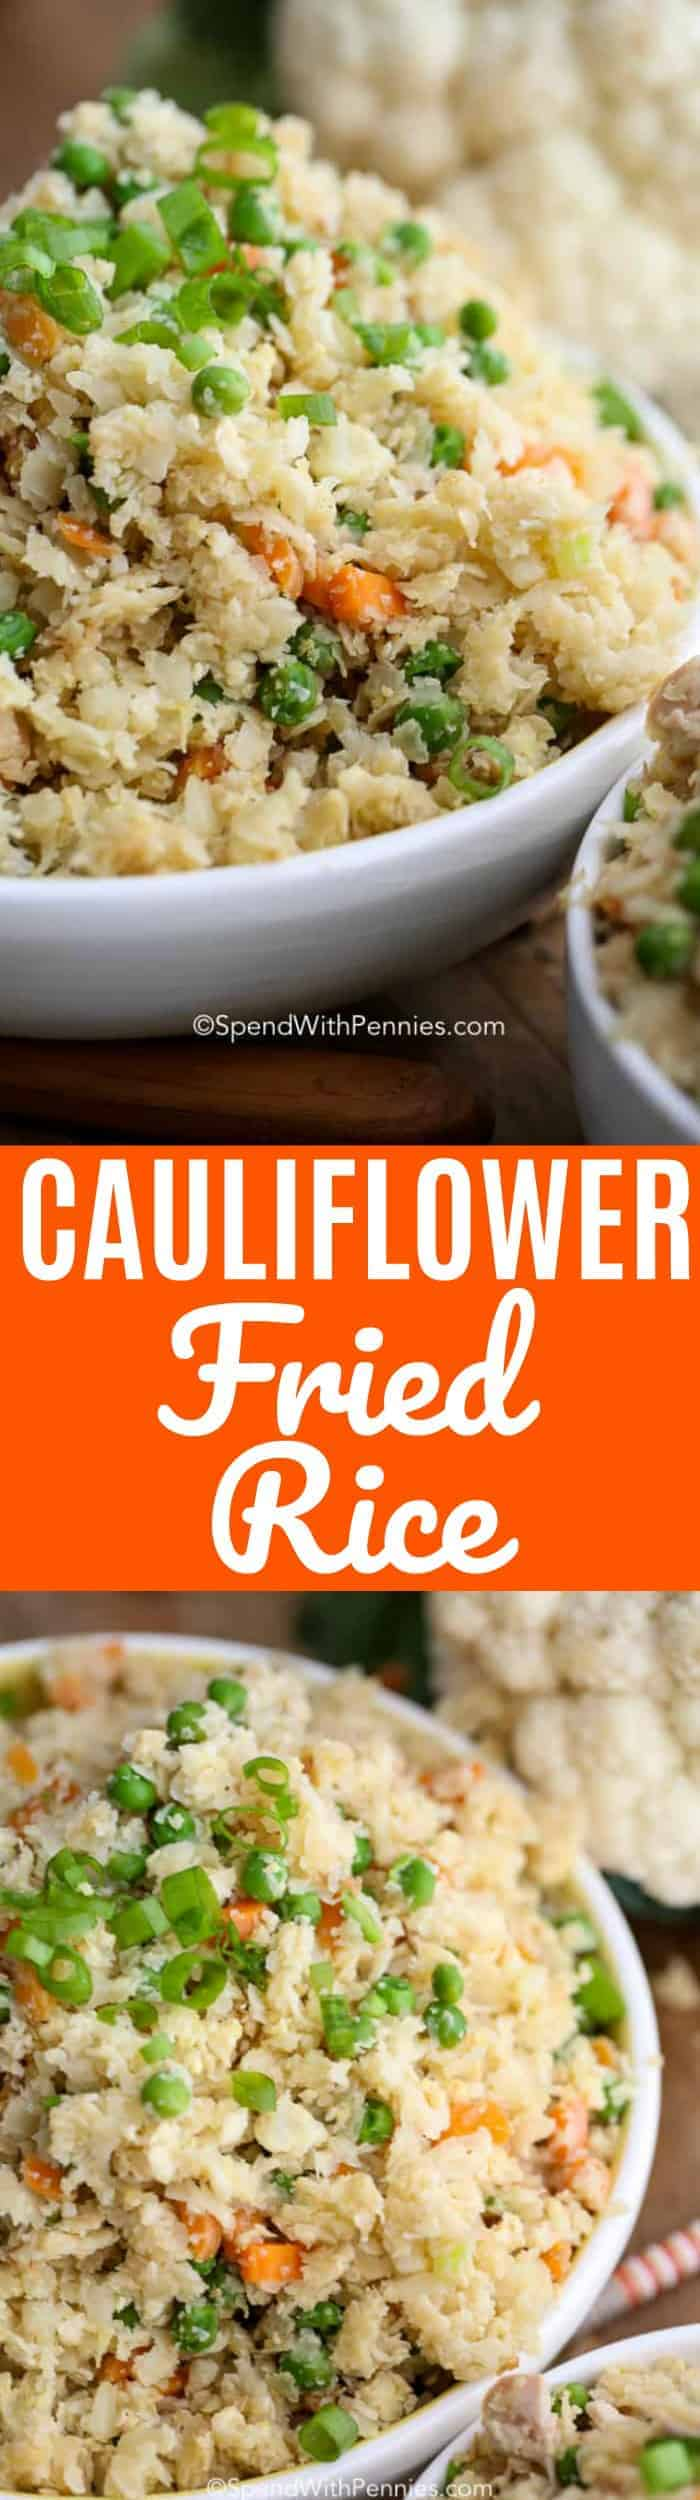 Cauliflower fried rice can be made with veggies or with chicken, beef or pork.  The perfectly healthy way to enjoy takeout flavors at home!